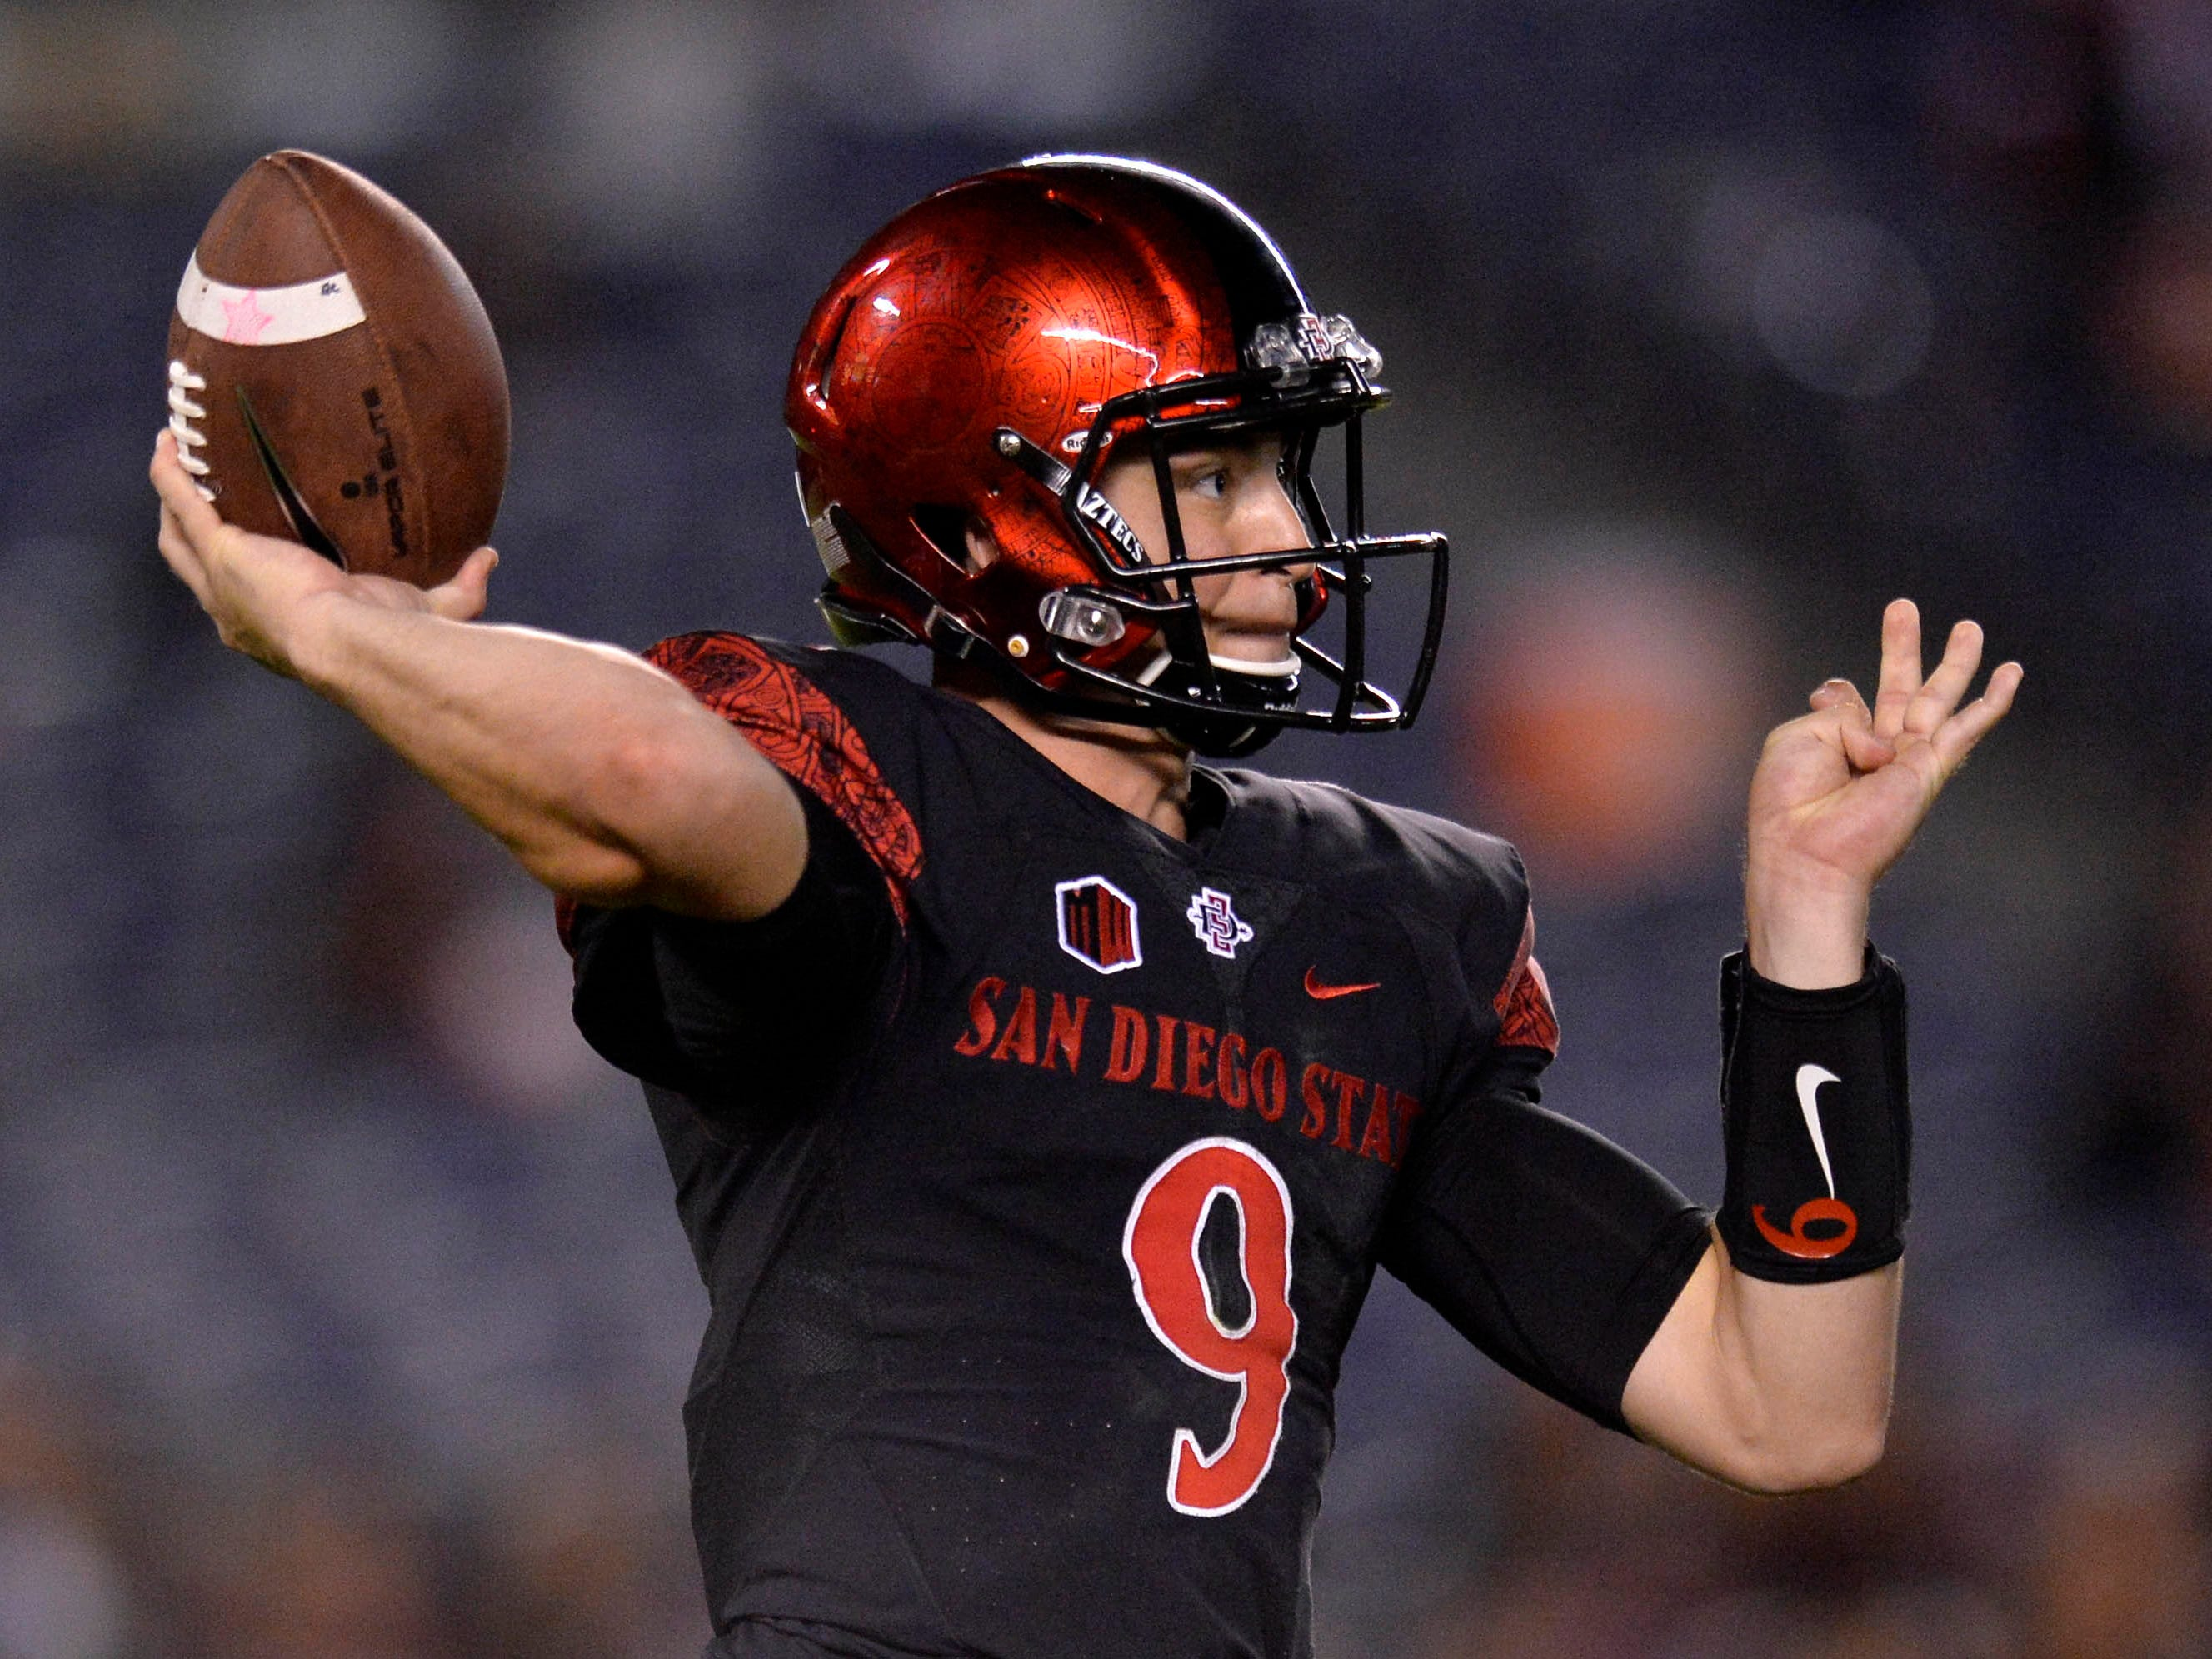 Sep 15, 2018; San Diego, CA, USA; San Diego State Aztecs quarterback Ryan Agnew (9) passes during the third quarter against the Arizona State Sun Devils at SDCCU Stadium. Mandatory Credit: Jake Roth-USA TODAY Sports